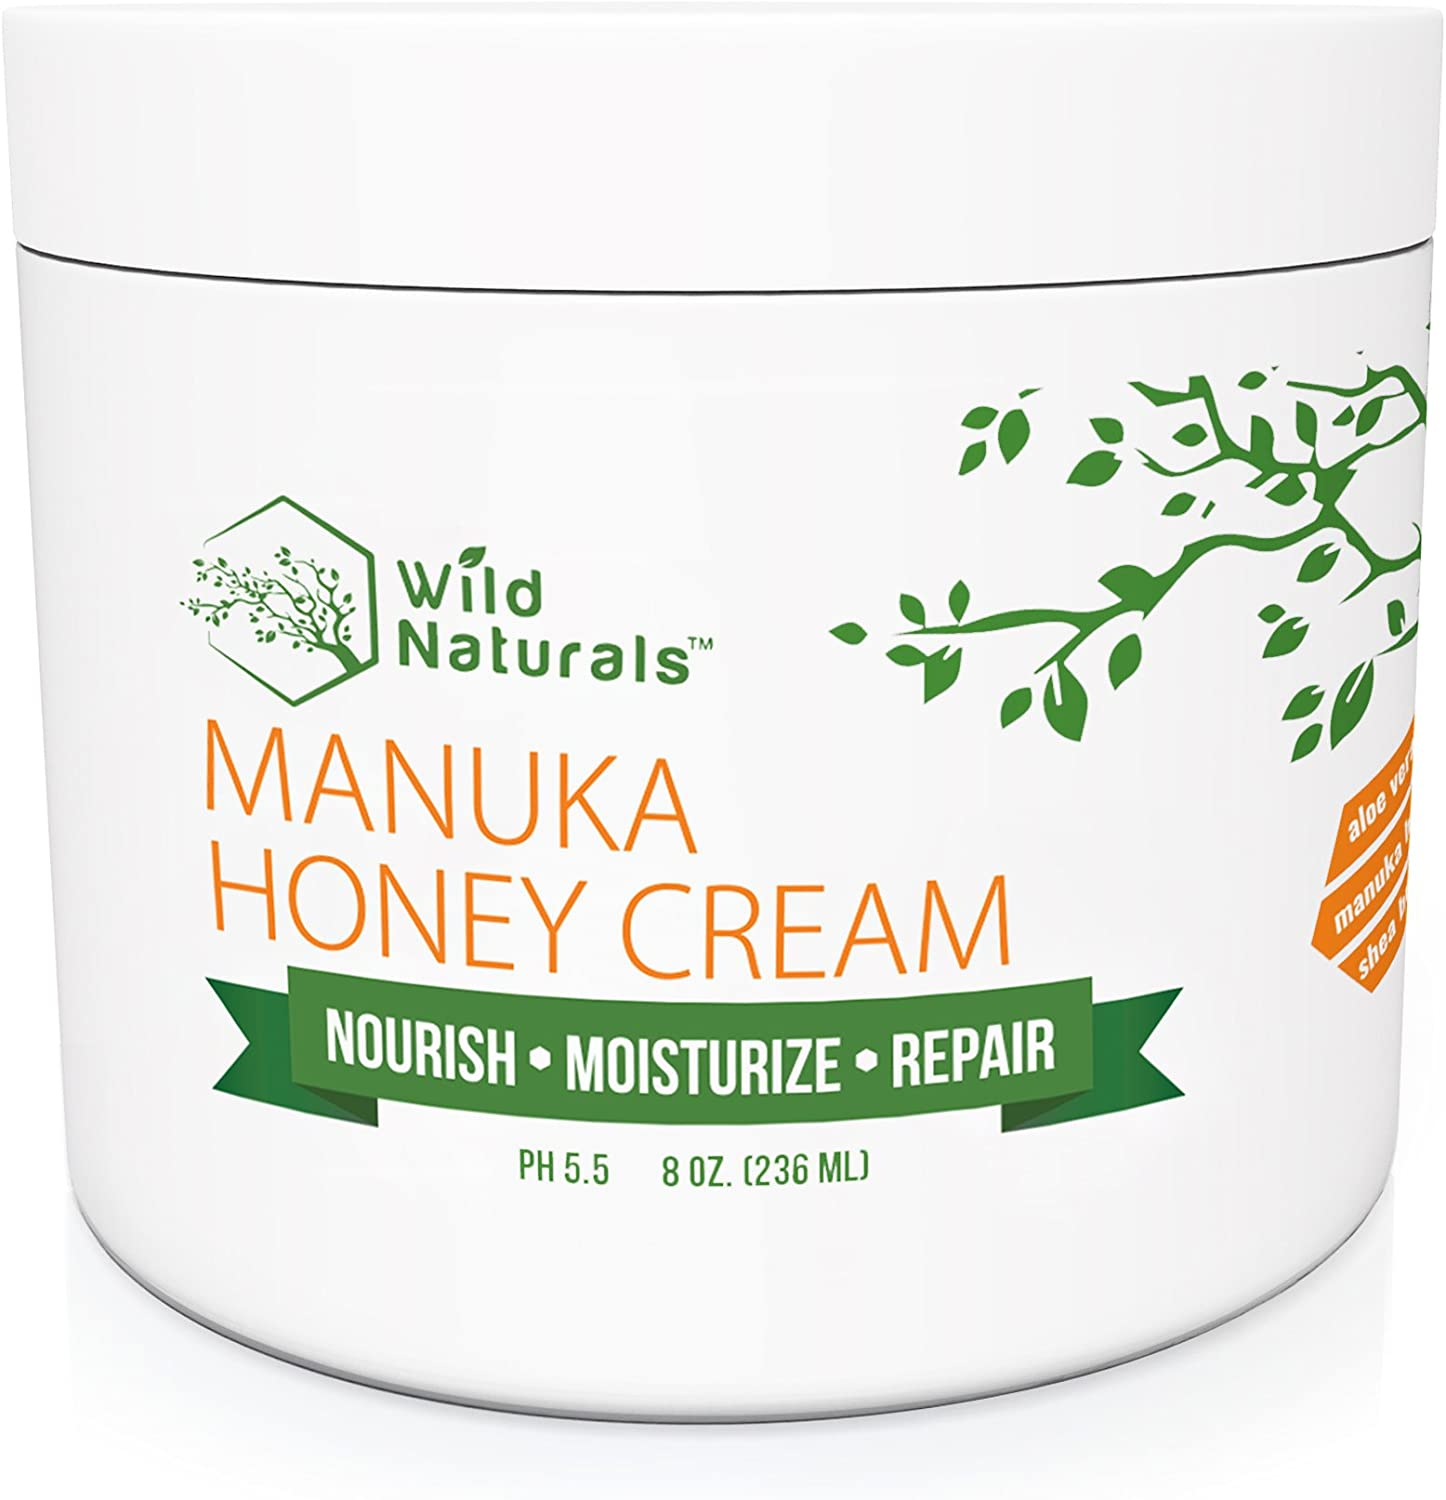 Manuka Honey Healing Eczema Cream : Aloe Vera + Shea Butter + Coconut Oil + Hemp Seed Oil Anti Itch Natural Moisturizer Face and Body Lotion for Dry Skin Dermatitis Psoriasis Rosacea Sunburn Relief